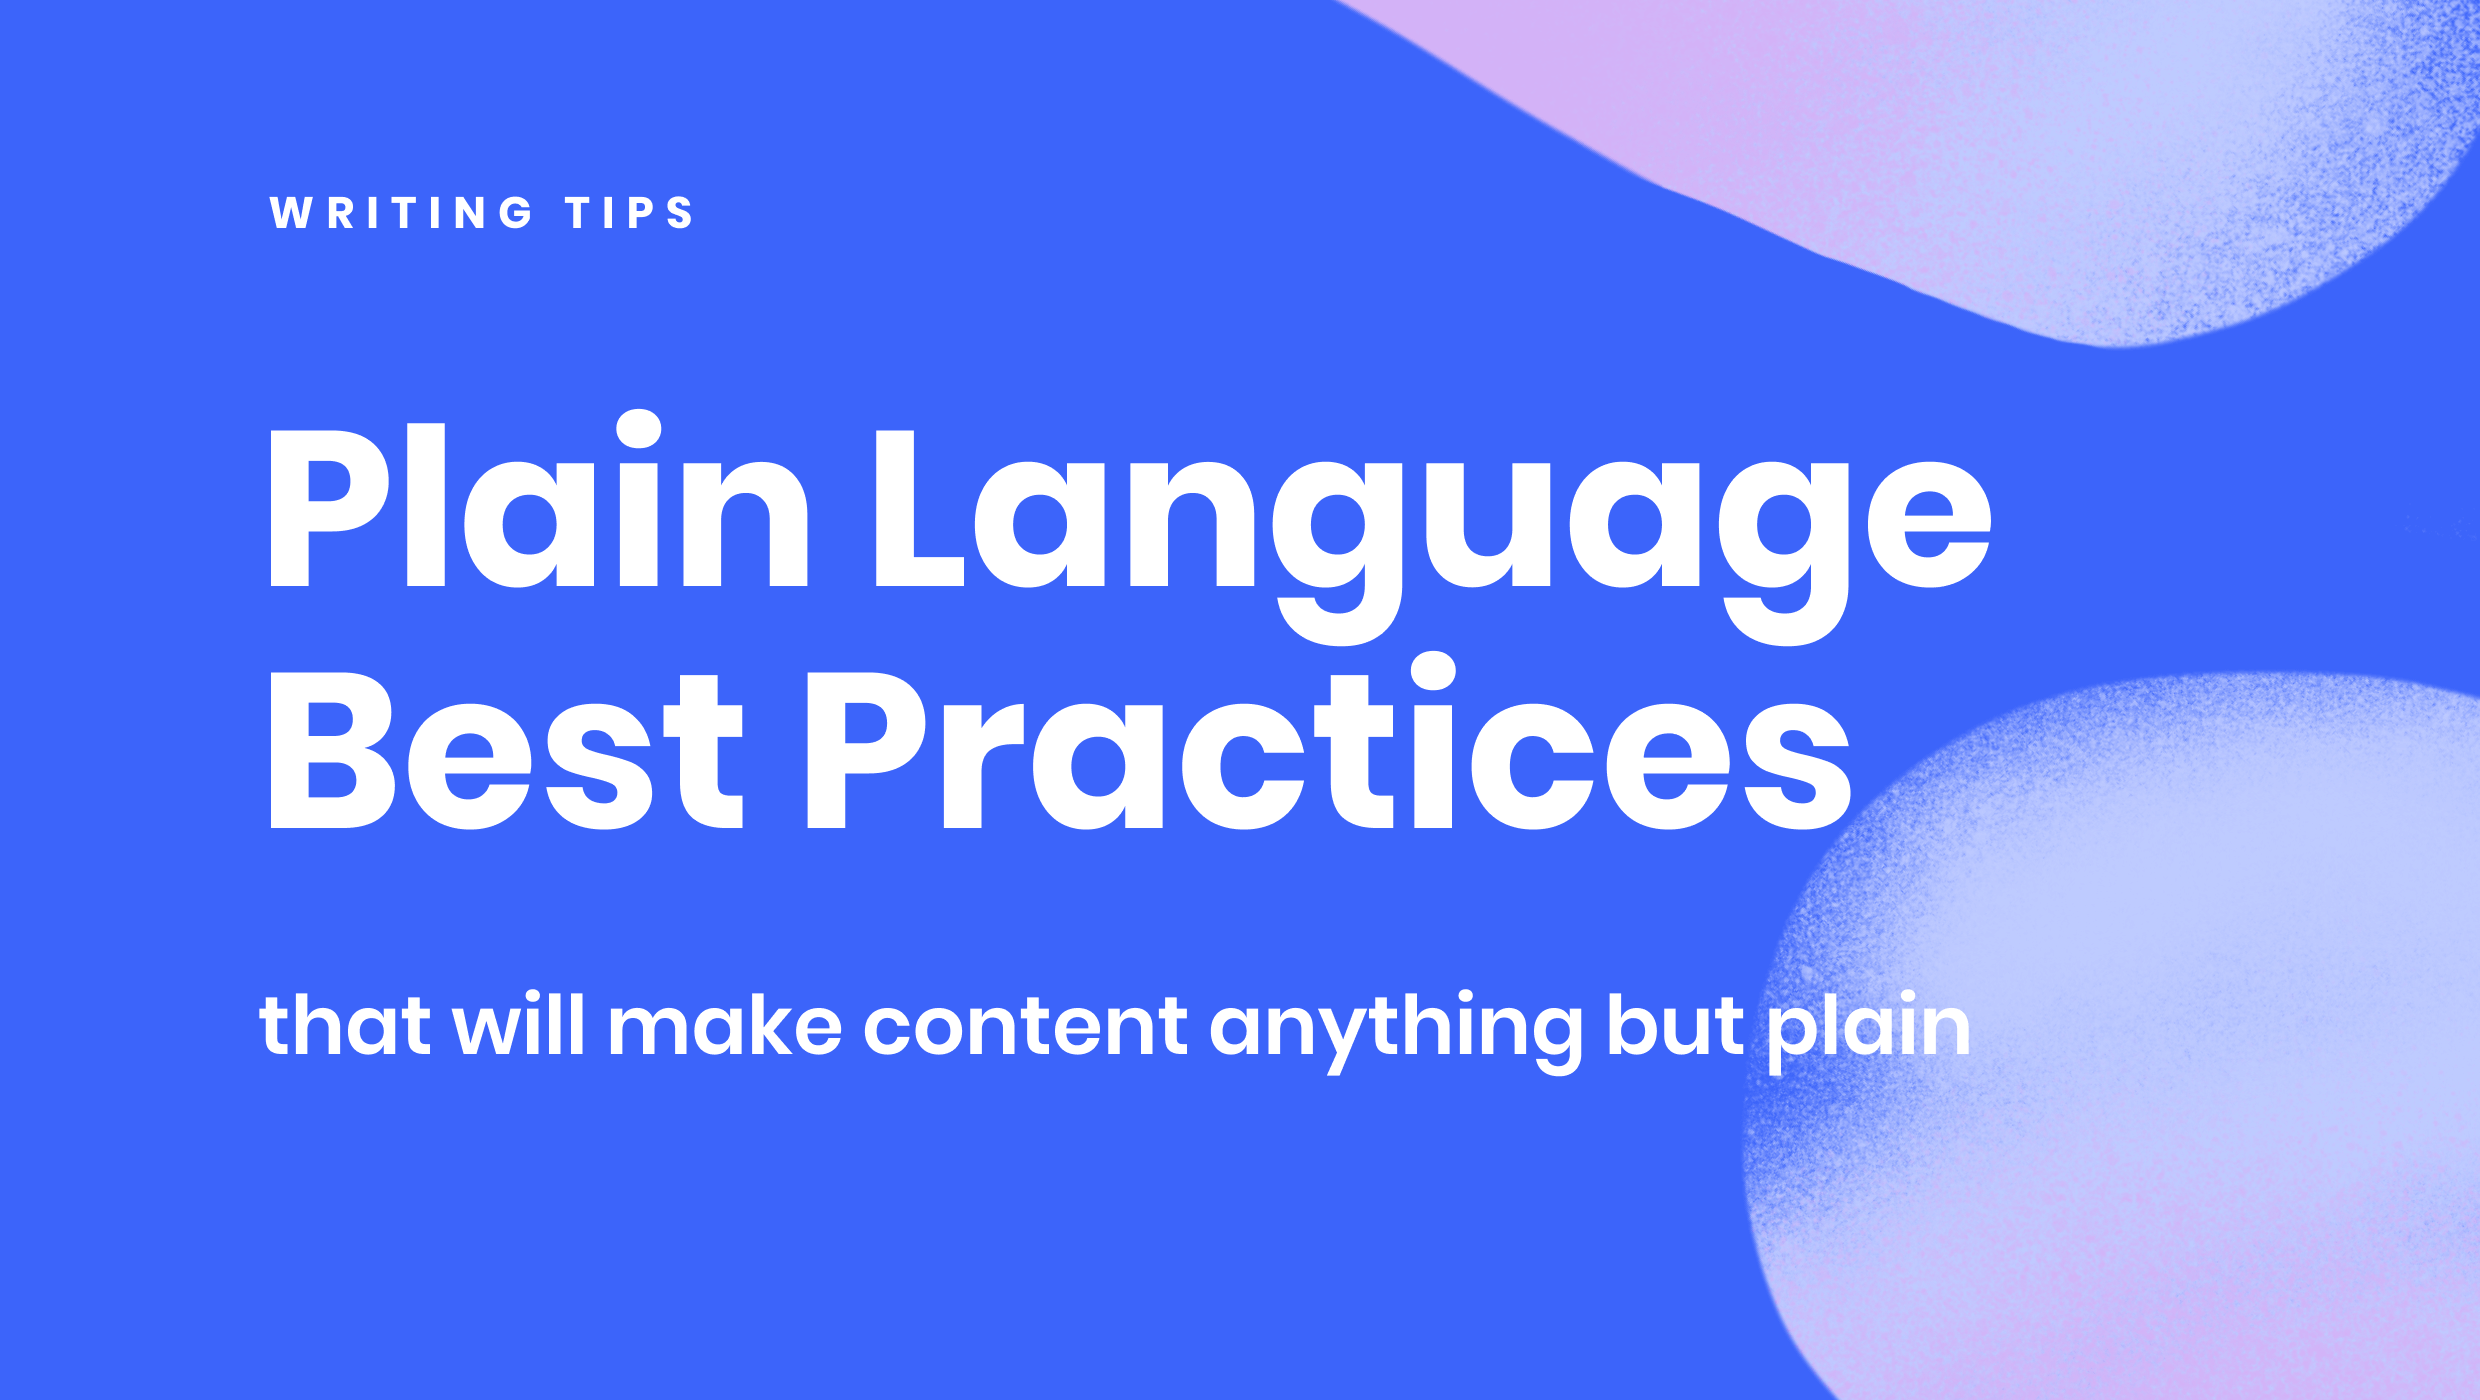 Plain language best practices that will make your content anything but plain